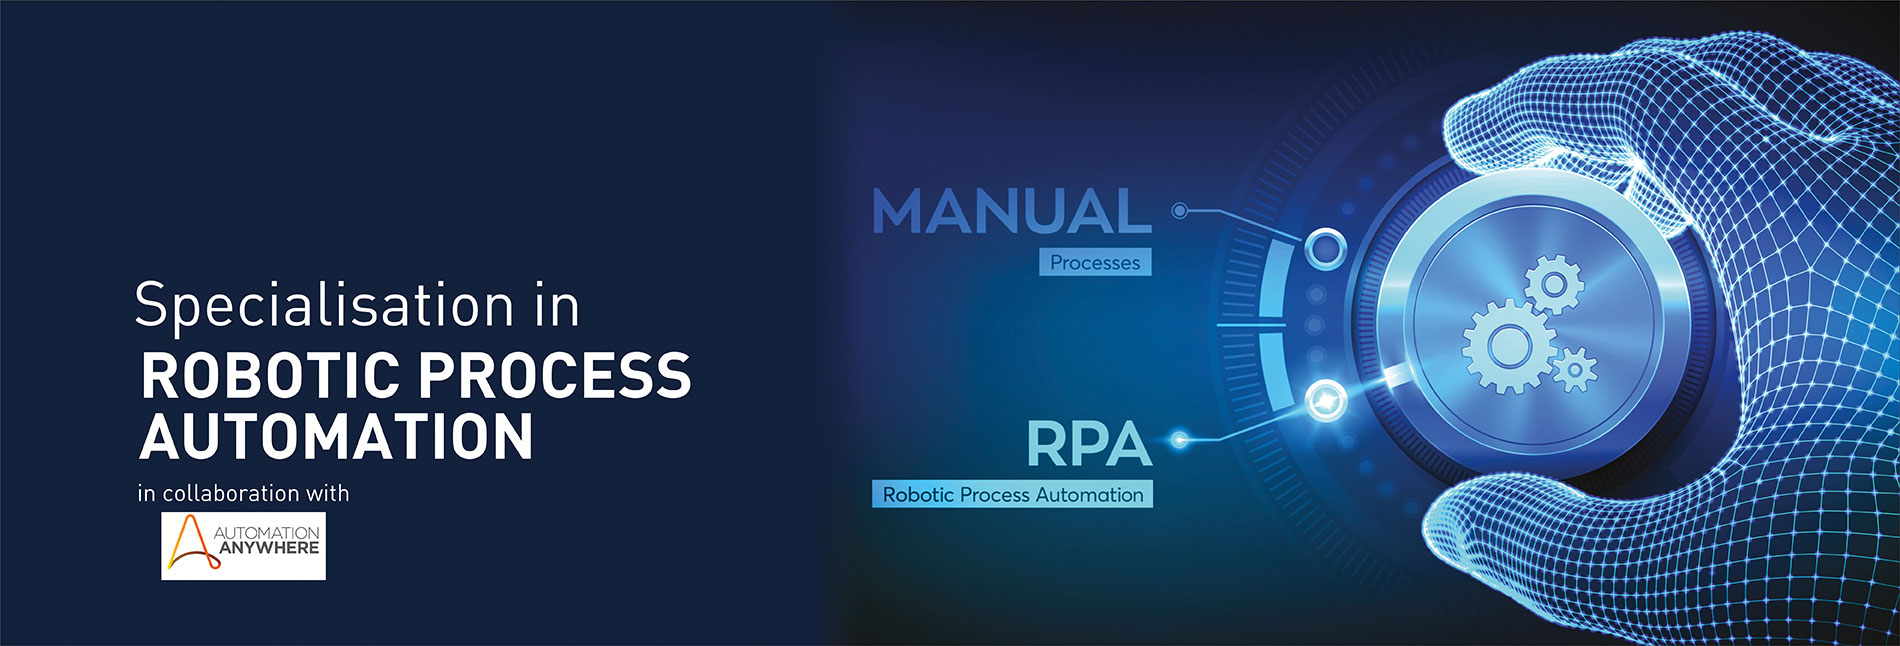 Specialisation In Robotic Process Automation